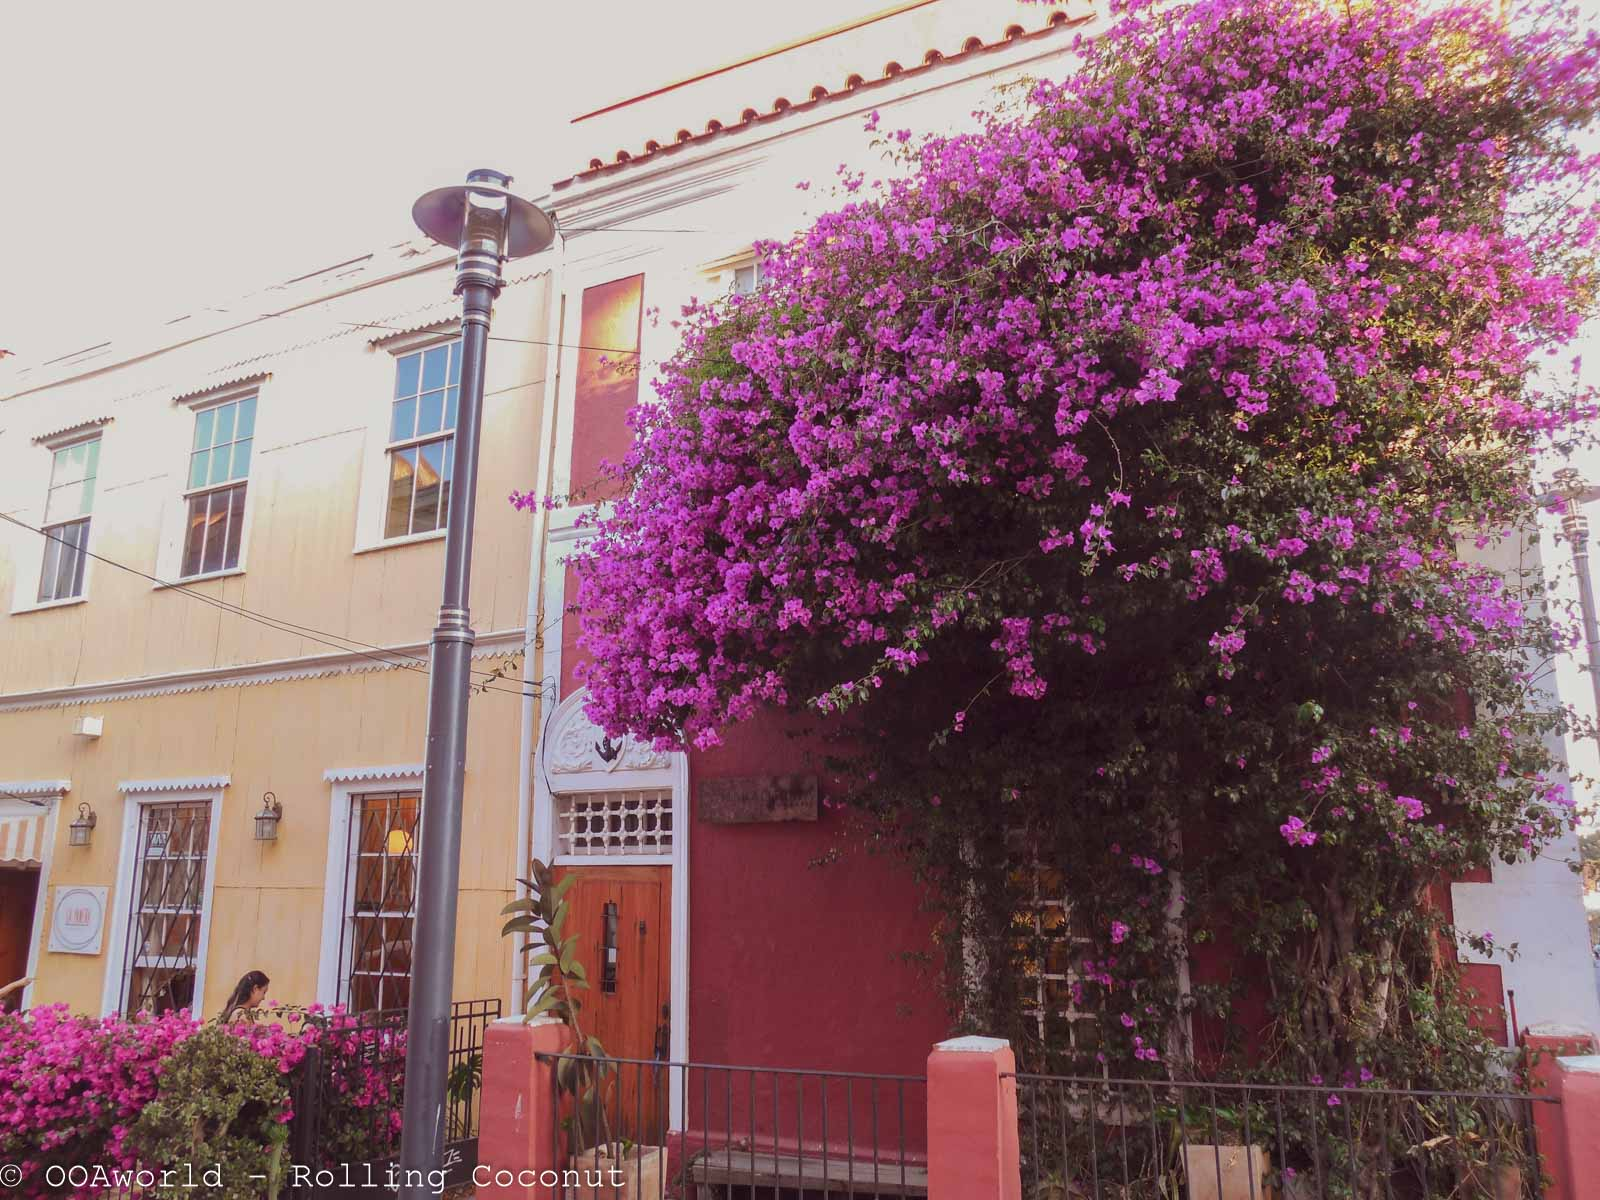 House Flowers Valparaiso Chile Photo Rolling Coconut Ooaworld